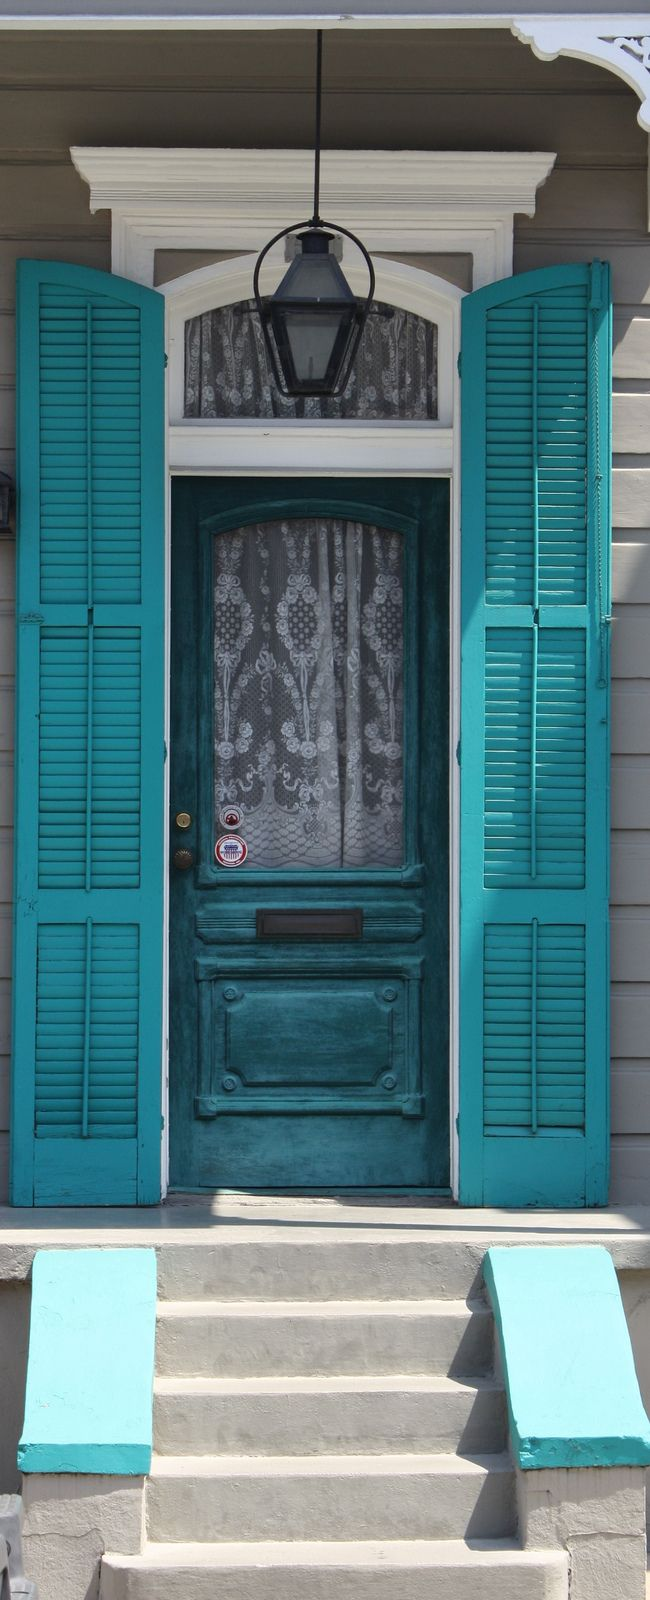 """""""IMG_3233"""" by gcl1964 on Flickr - New Orleans, Louisiana"""